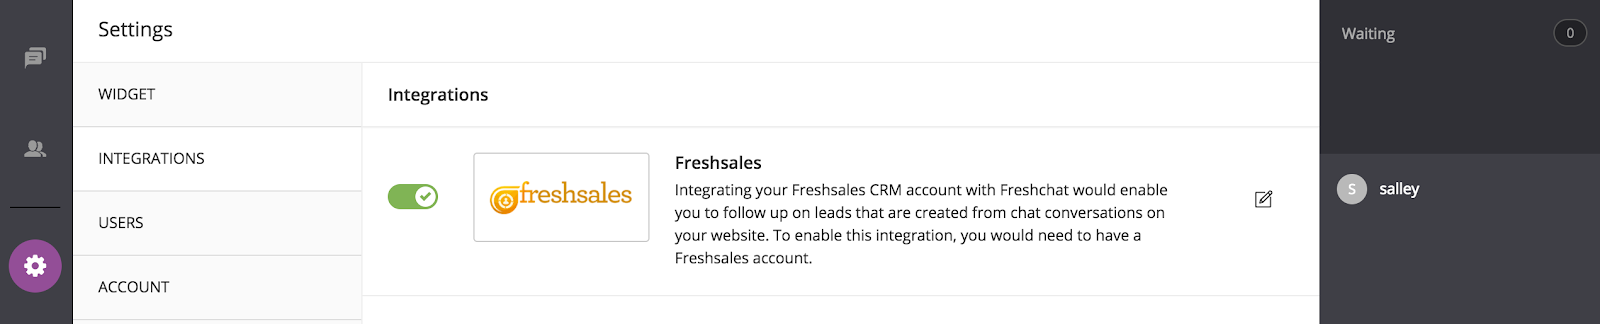 Freshsales Integration-turn toggle on.png